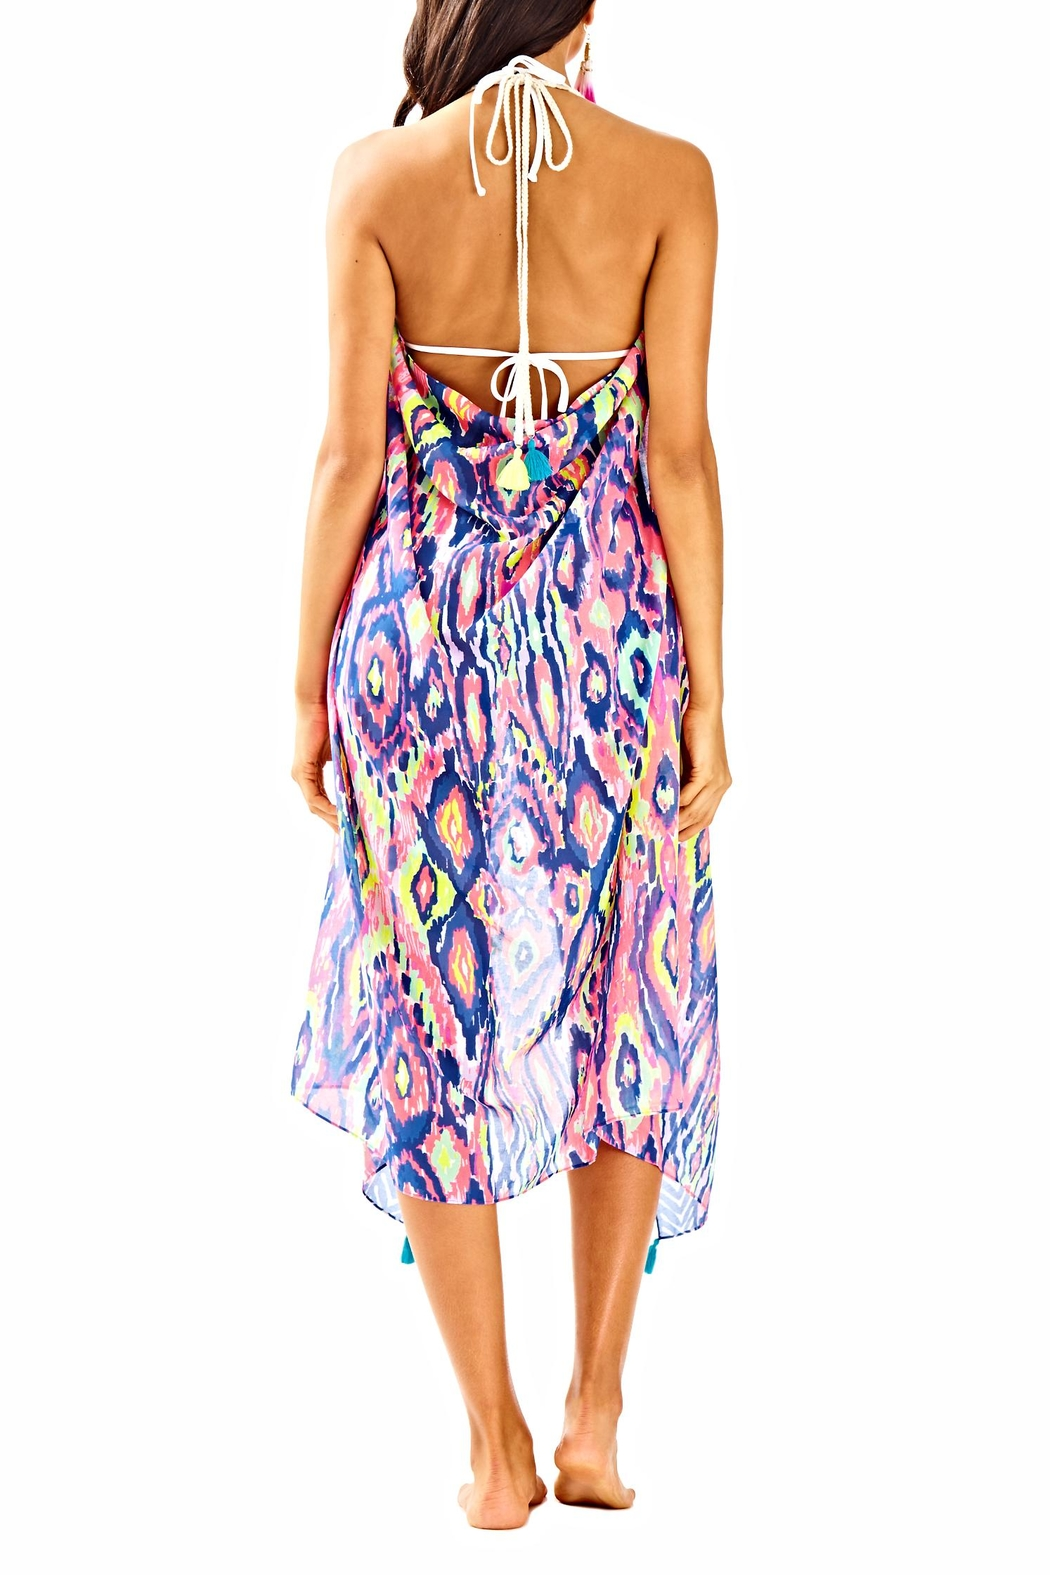 Lilly Pulitzer Gypsy Beach Cover Up From Sandestin Golf And Beach